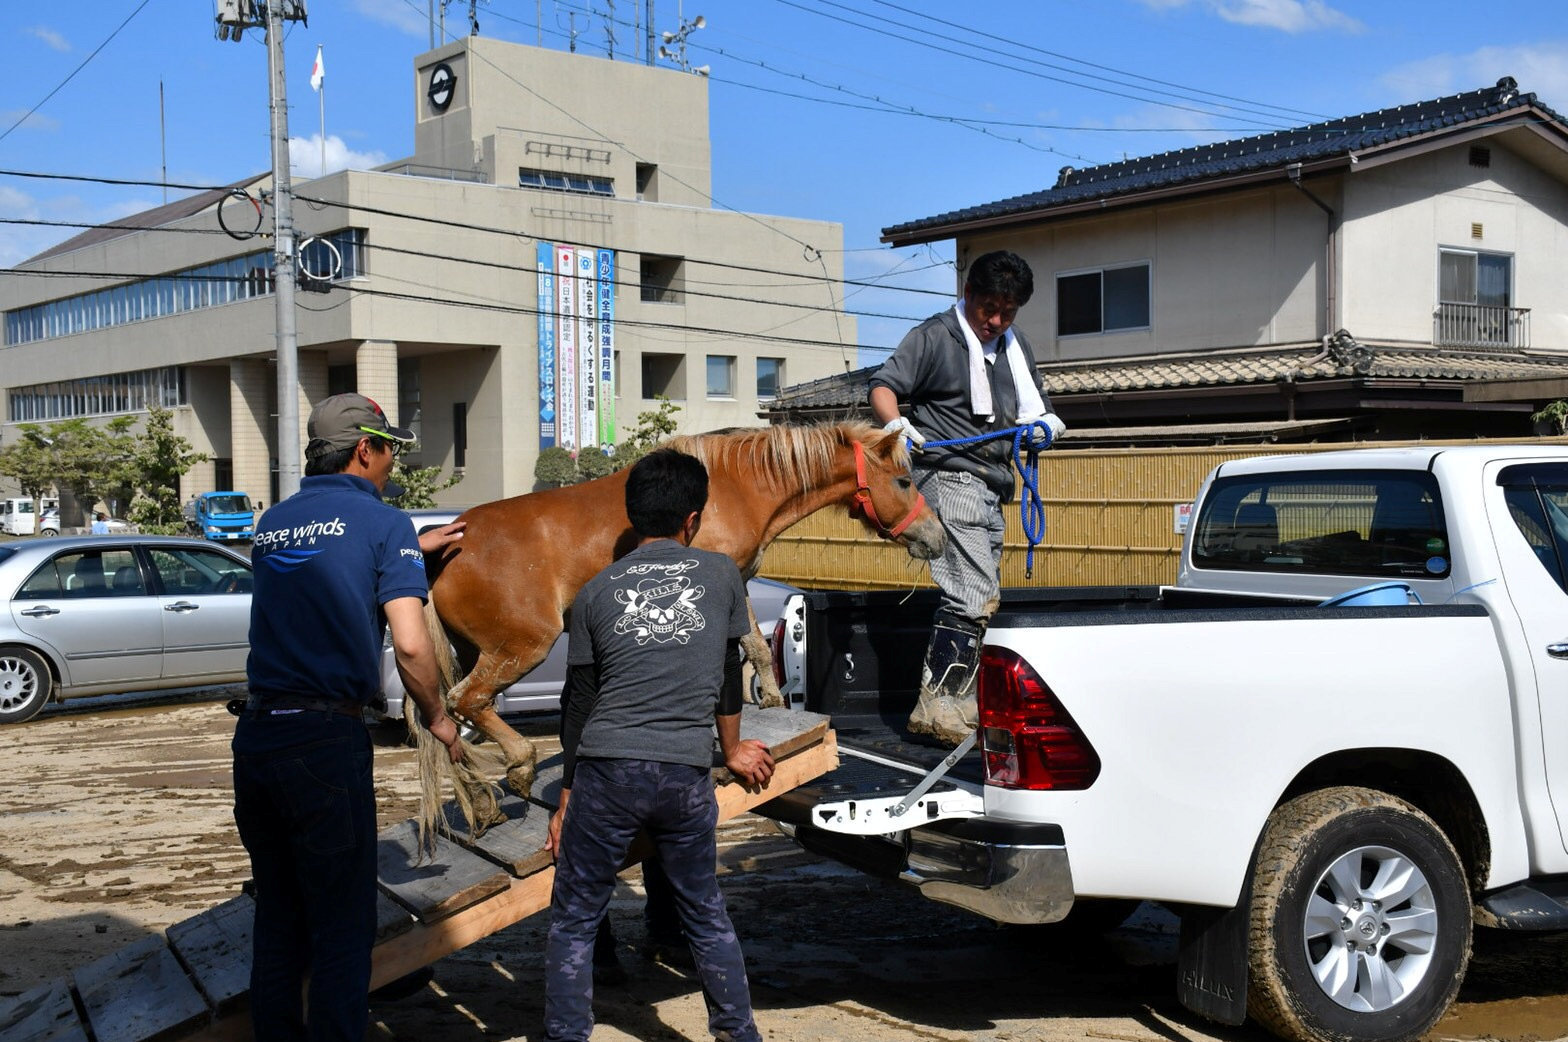 A horse stranded on a rooftop after torrential rain, is rescued in Kurashiki, Okayama Prefecture, Japan July 9, 2018